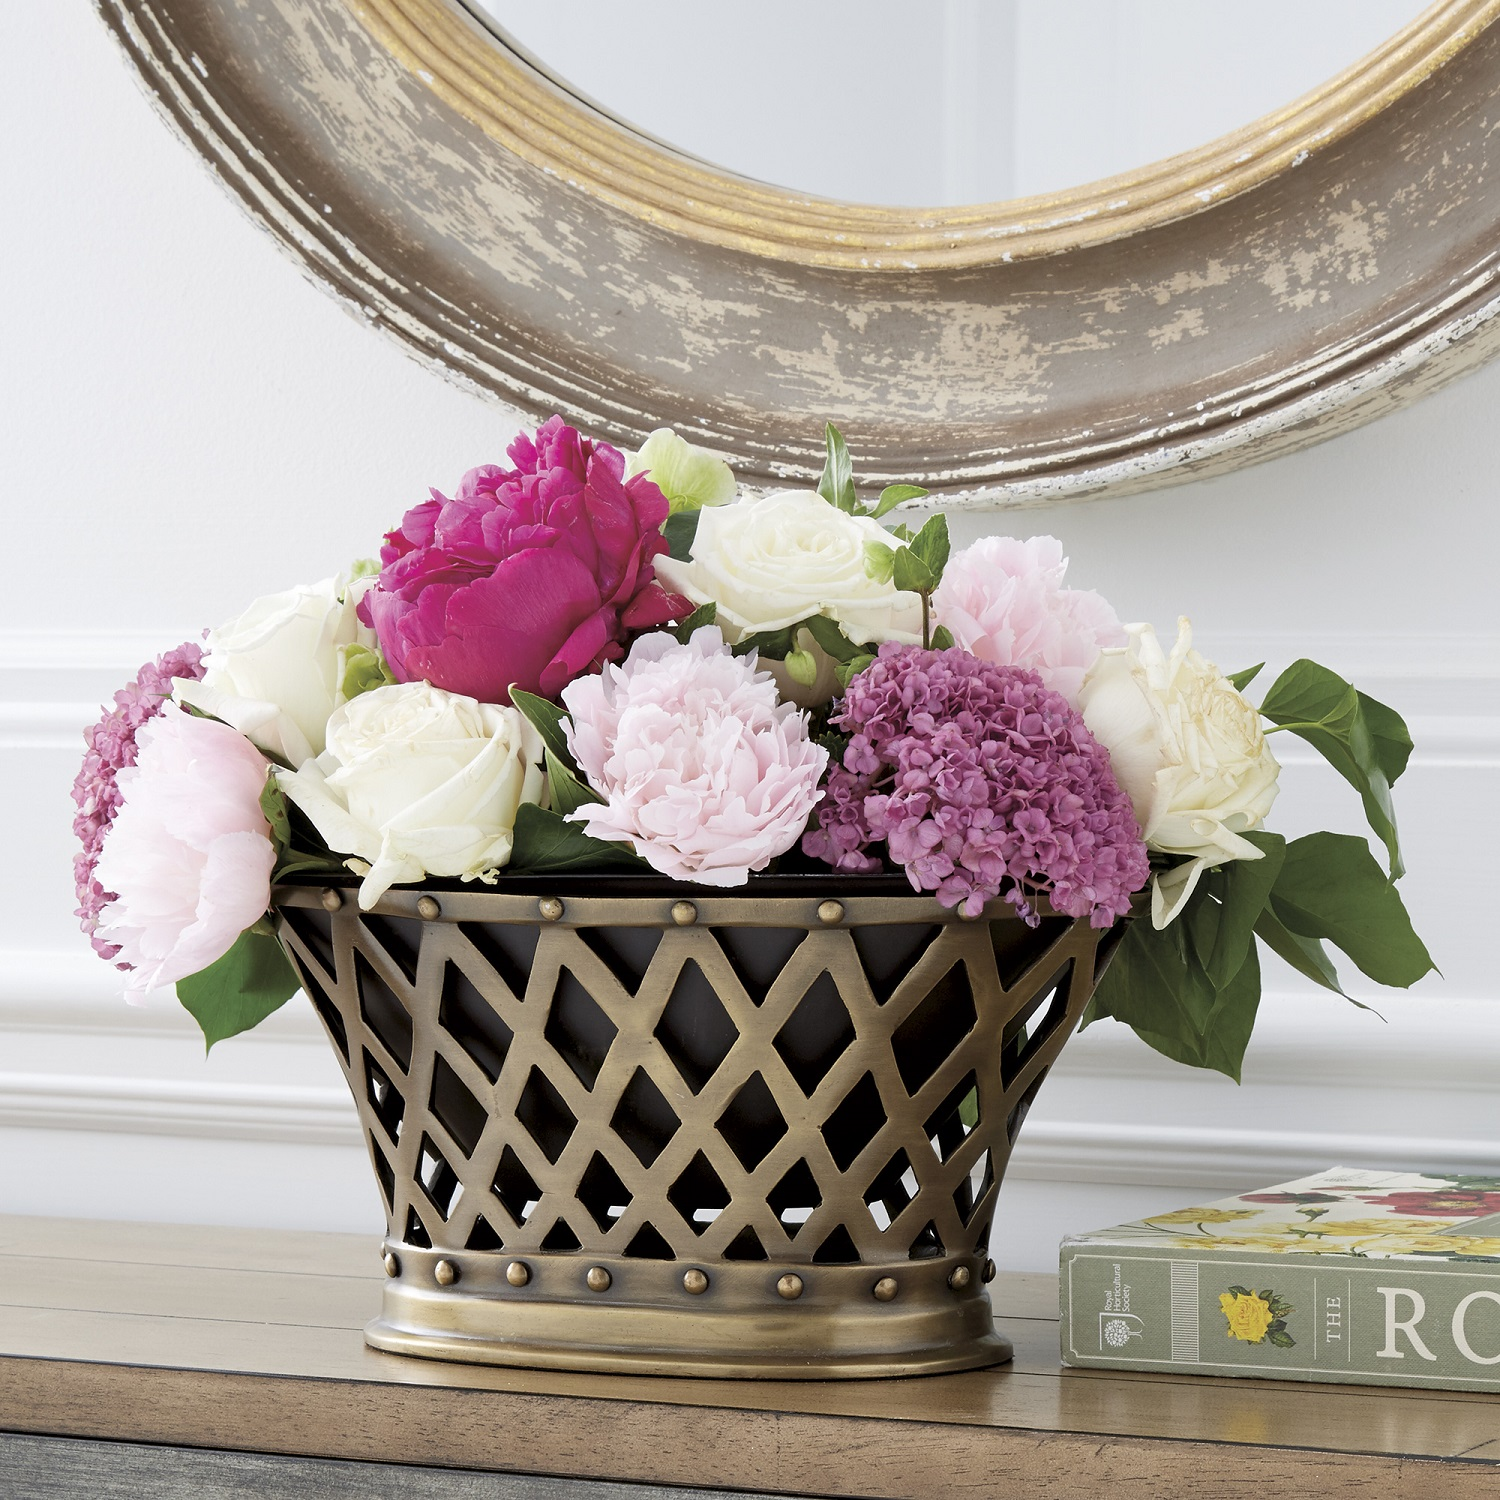 Scaling back means that you can say more with less in your home. Renowned designer, Bunny Williams has an oval lattice-style cachepot like this one resting on the mantel in her New York apartment. She designed this version for Ballard Designs with a watertight, removable iron liner so you can fill it with freshly cut stems. It's perfect for smaller centerpieces. Photo: Ballard Designs.